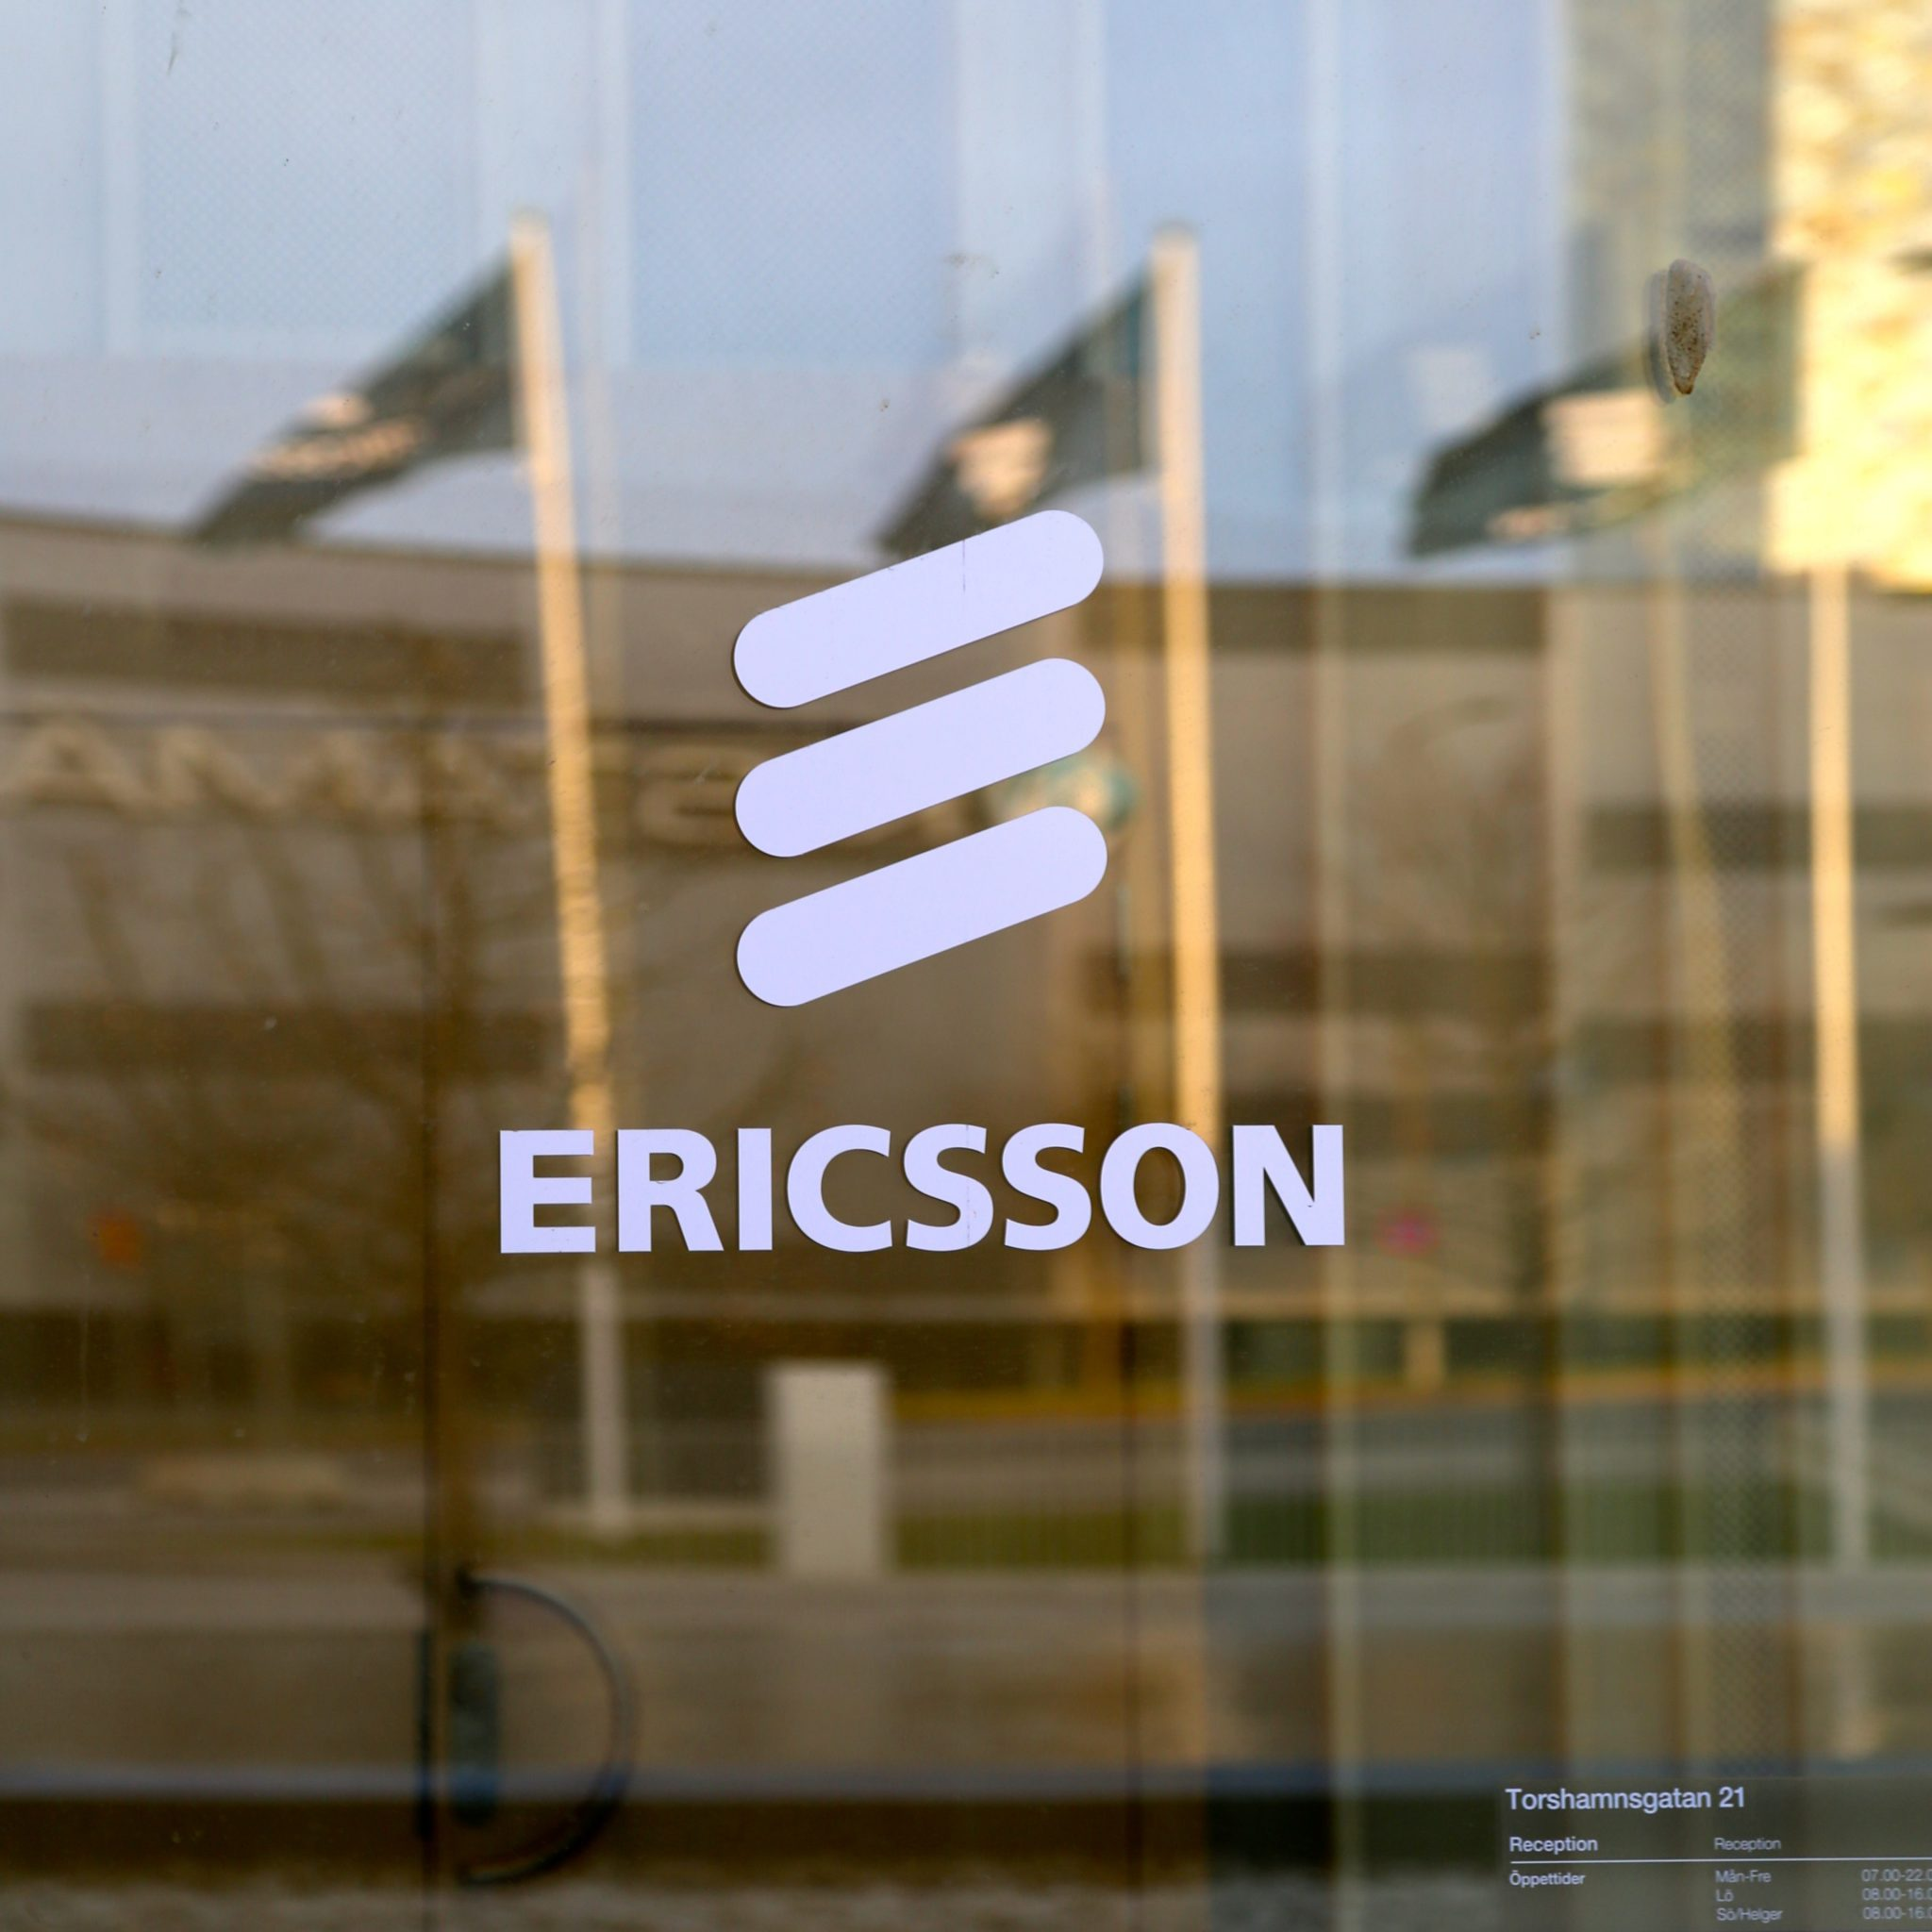 Orange France selects Ericsson for 5G deployment